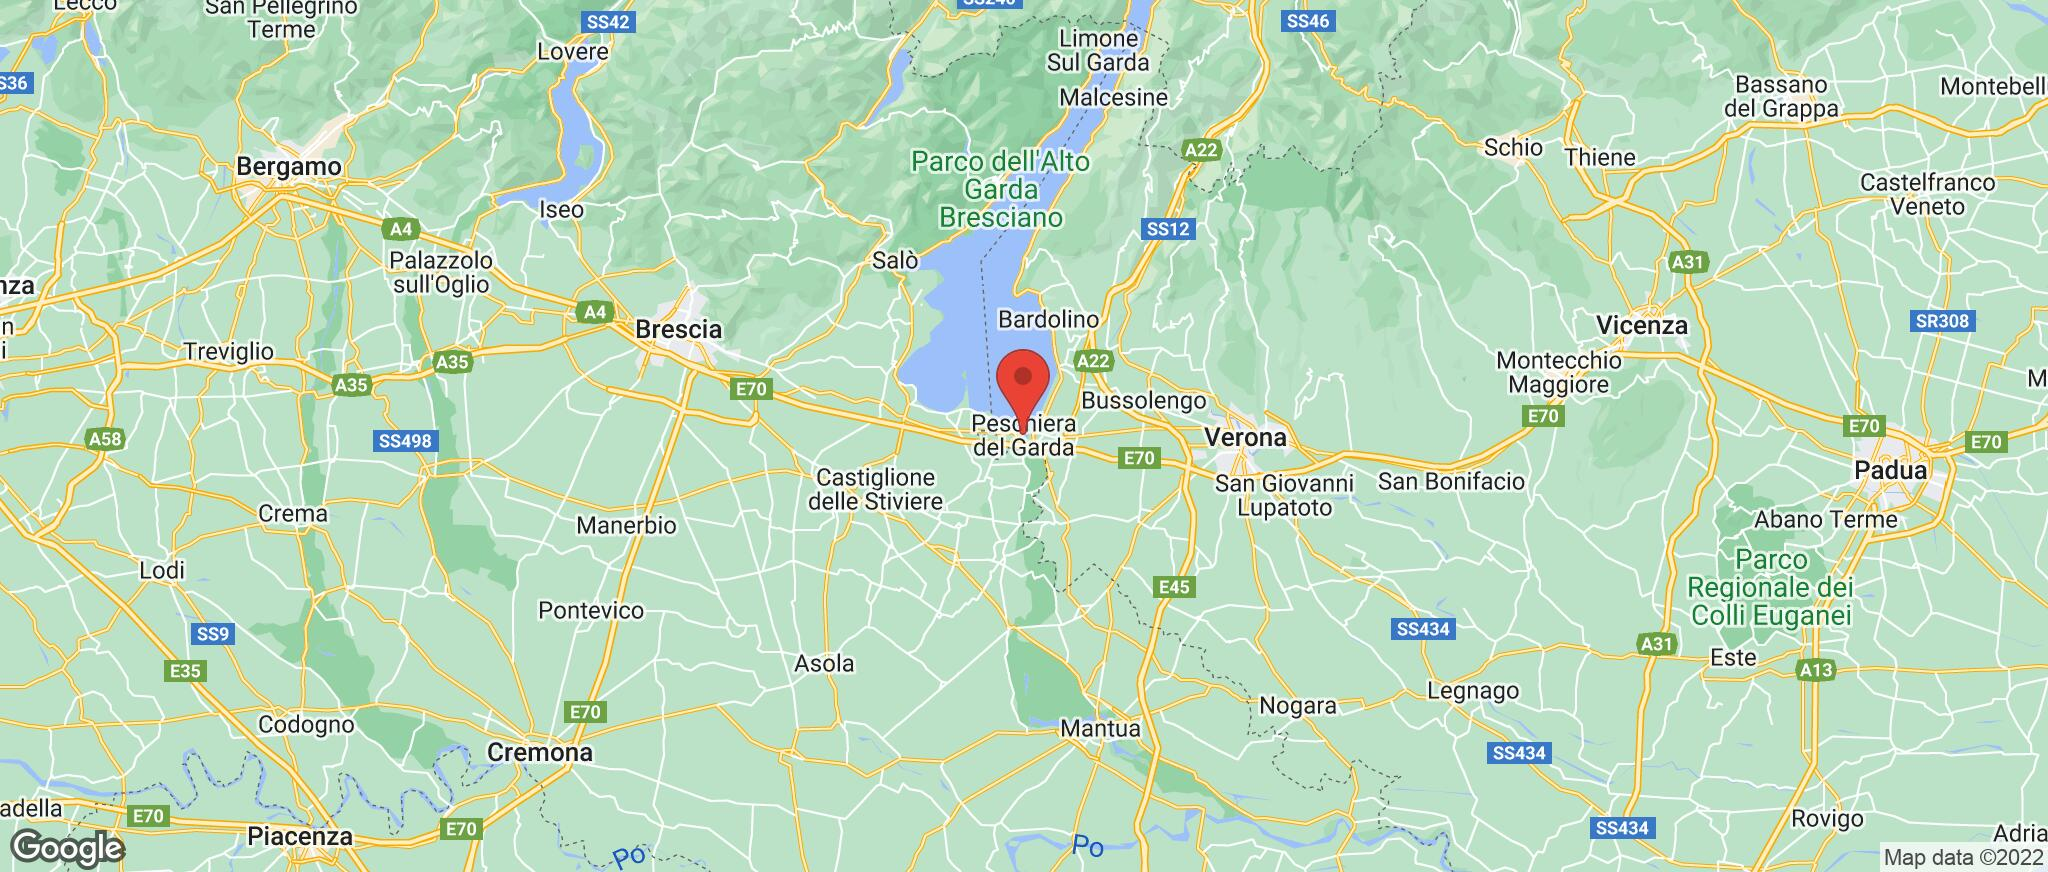 Map showing the location of Peschiera